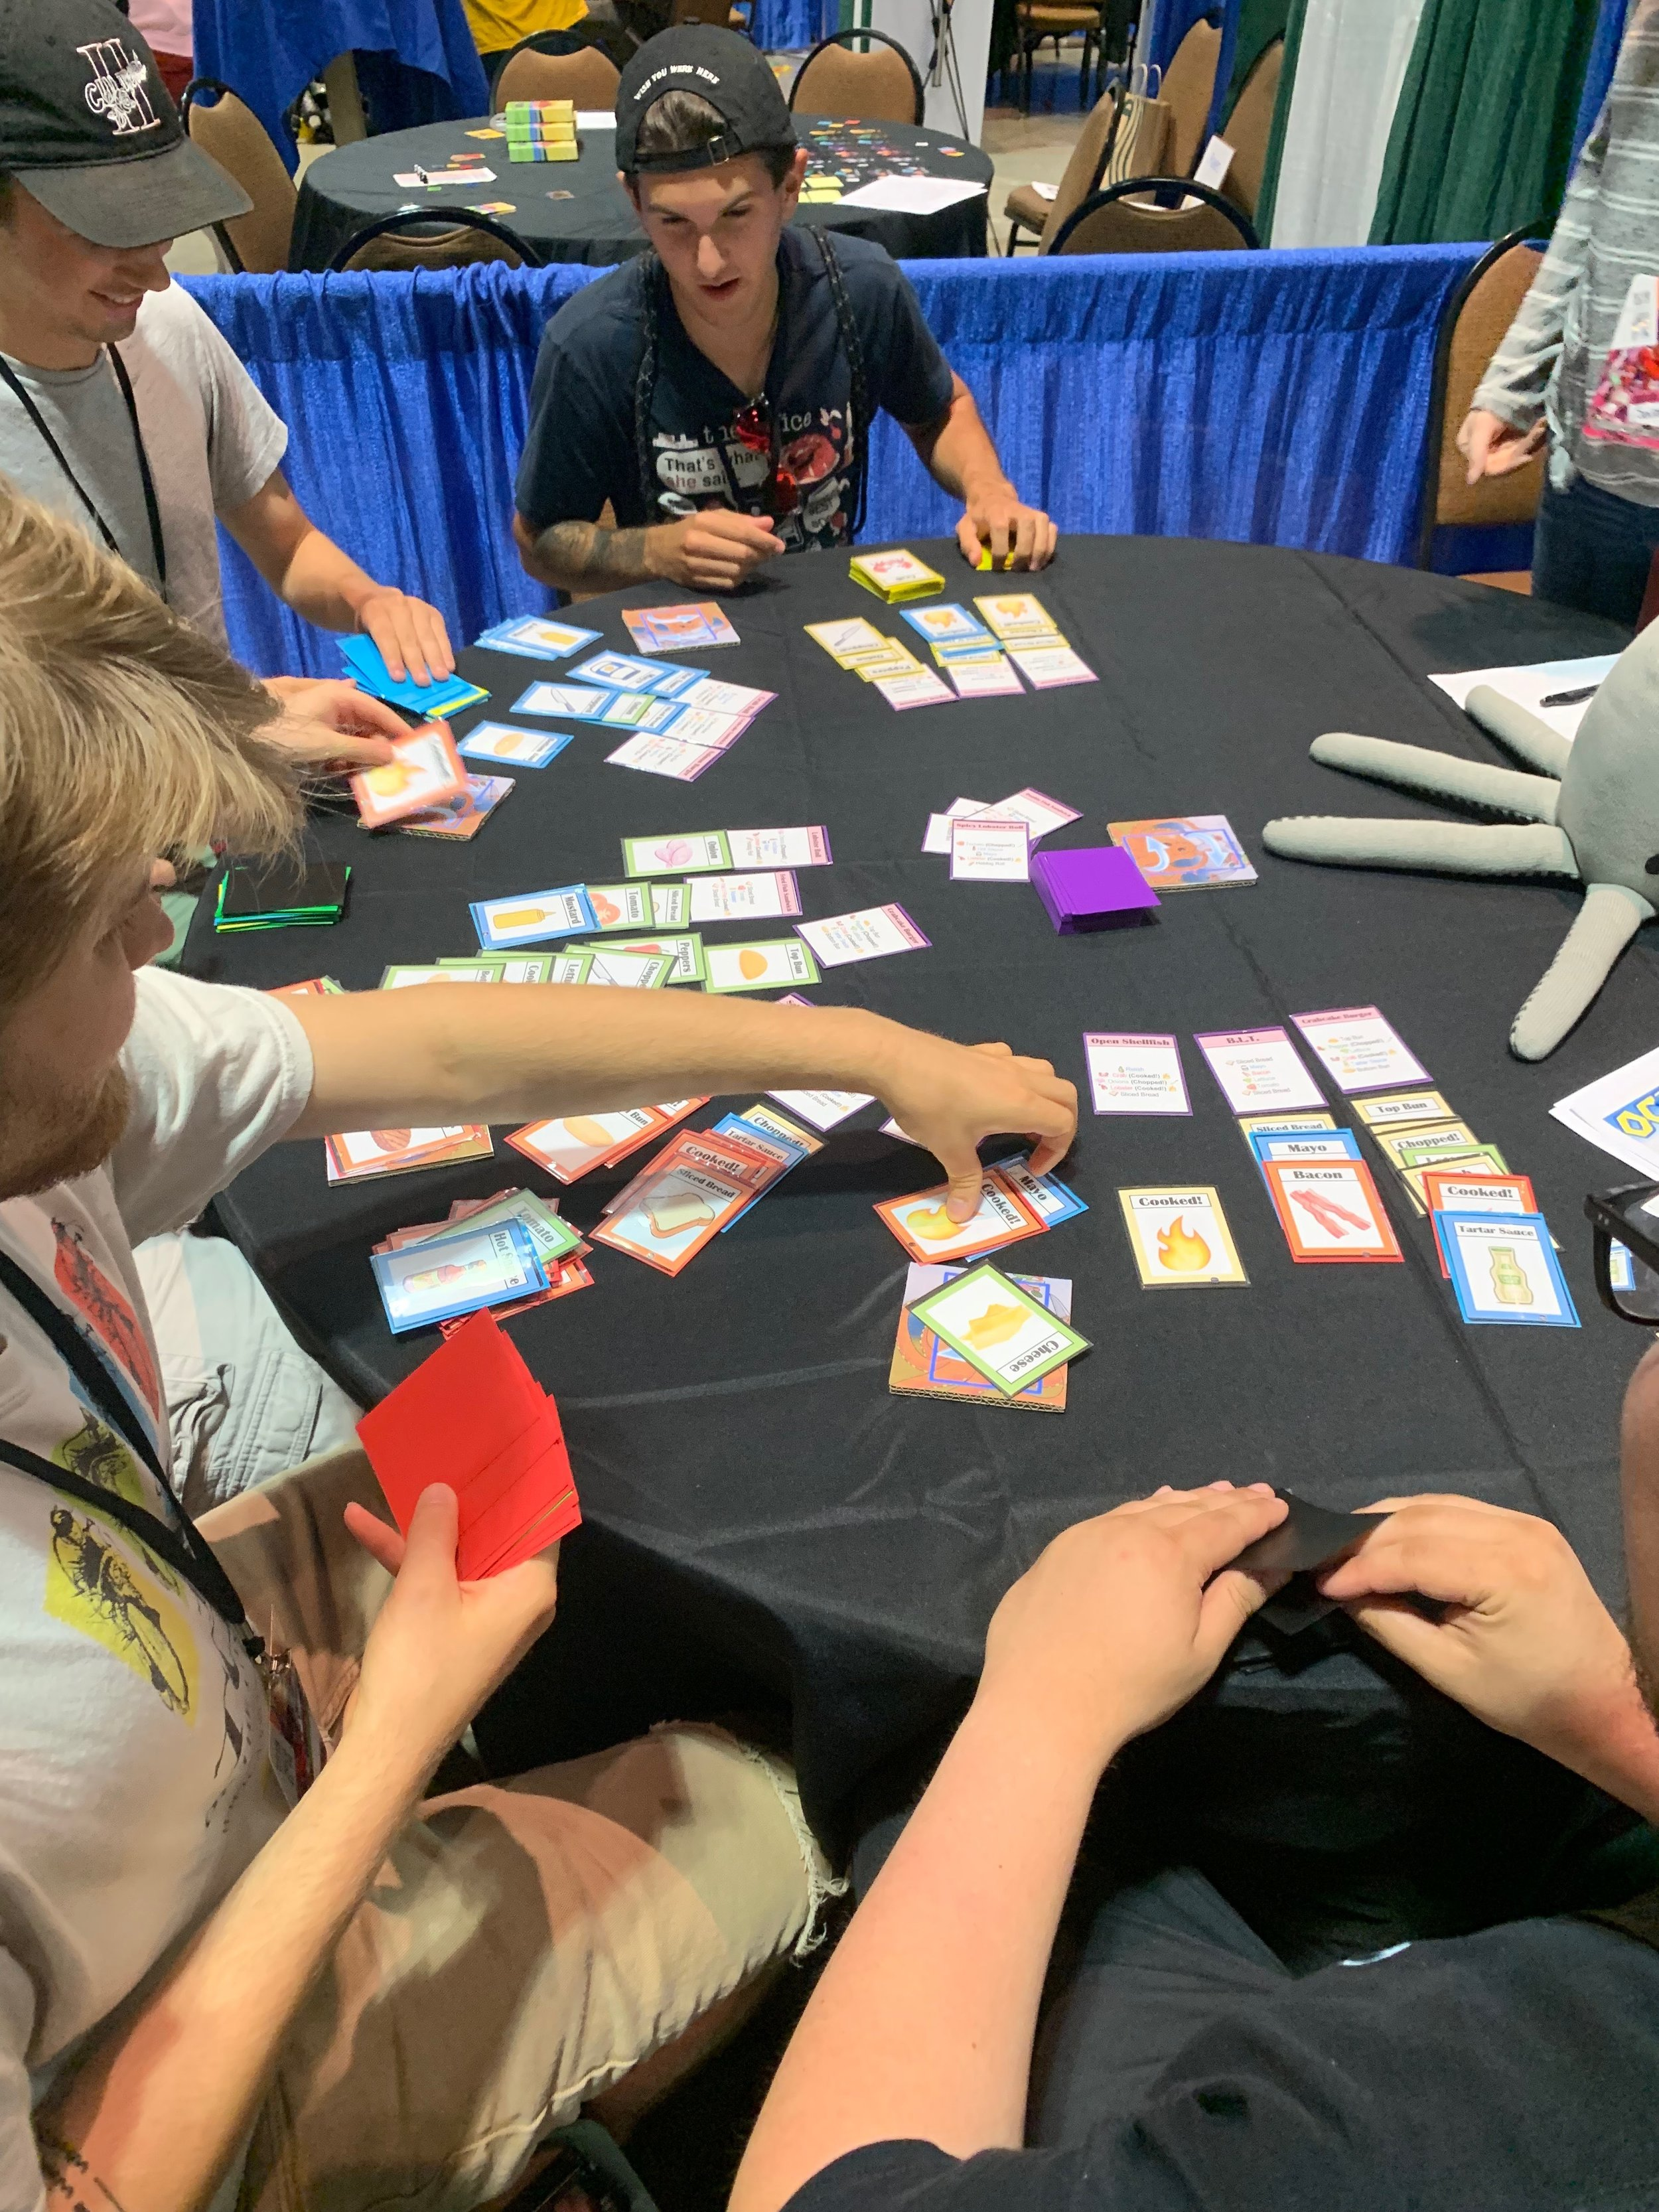 Lots of cards moving around in this game!